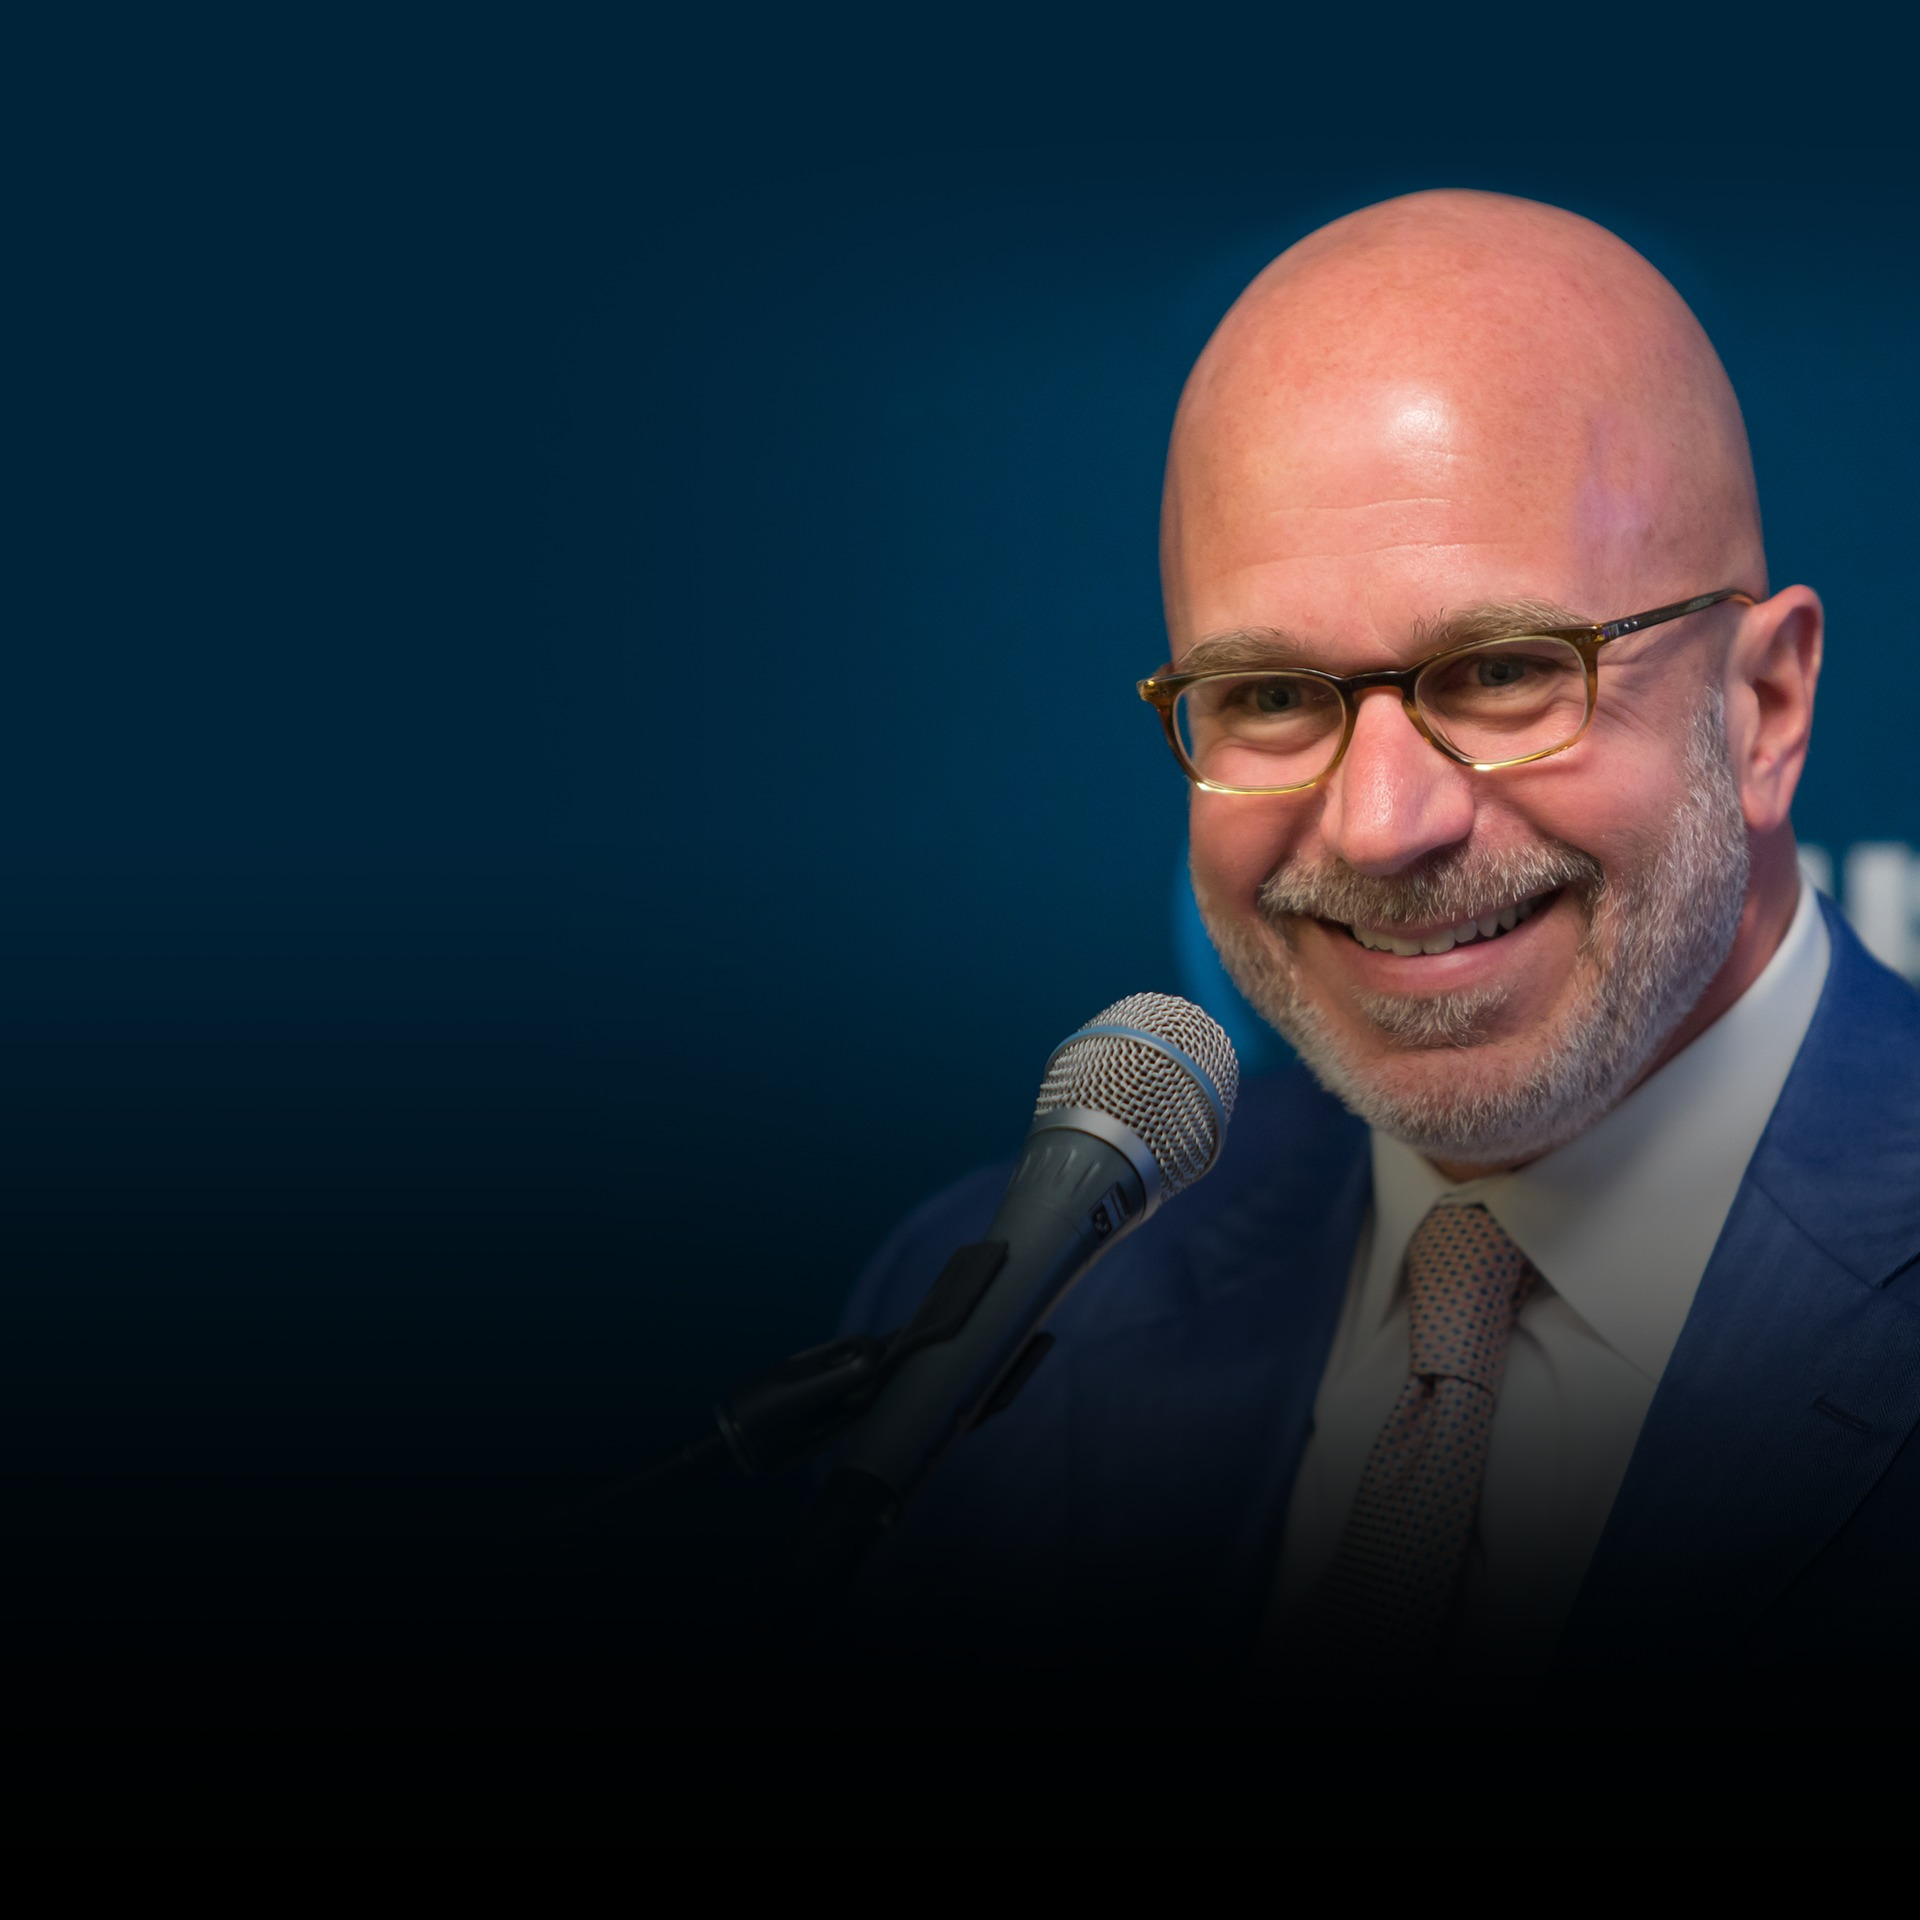 The Michael Smerconish Program